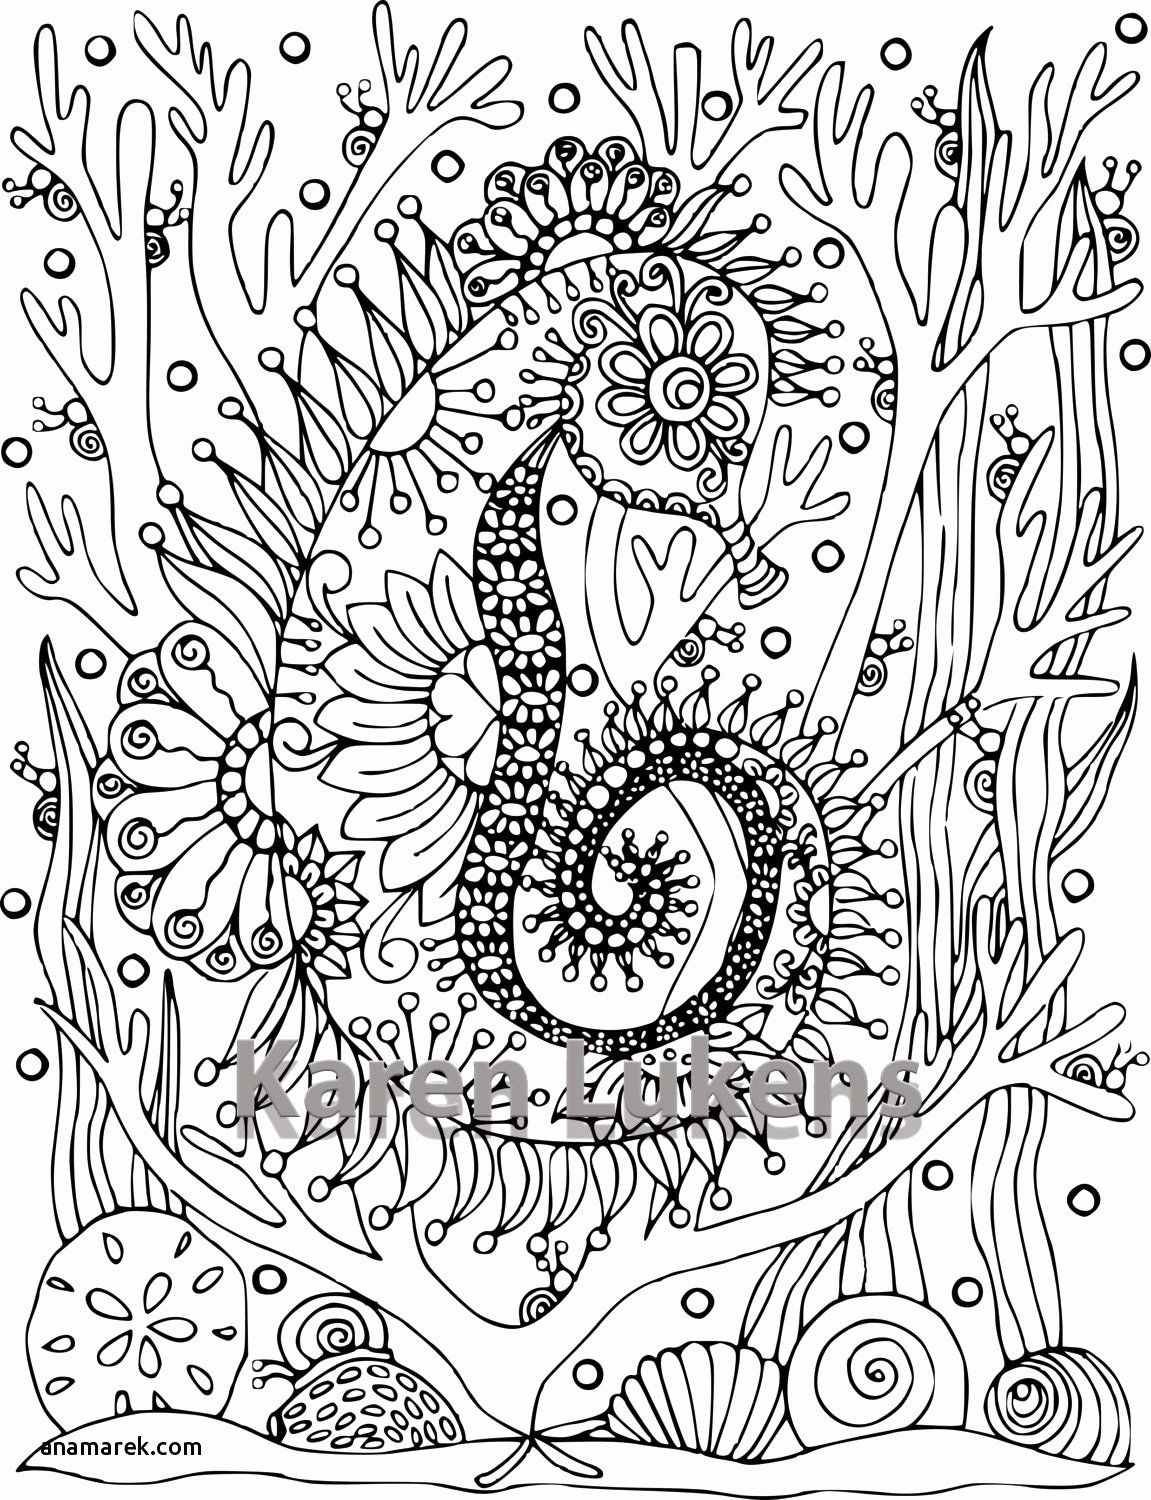 Numbered Coloring Pages For Adults Lovely 22 Coloring Pages For Kids Numbers Download Coloring Sheets Coloring Pages Crayola Coloring Pages Coloring Books